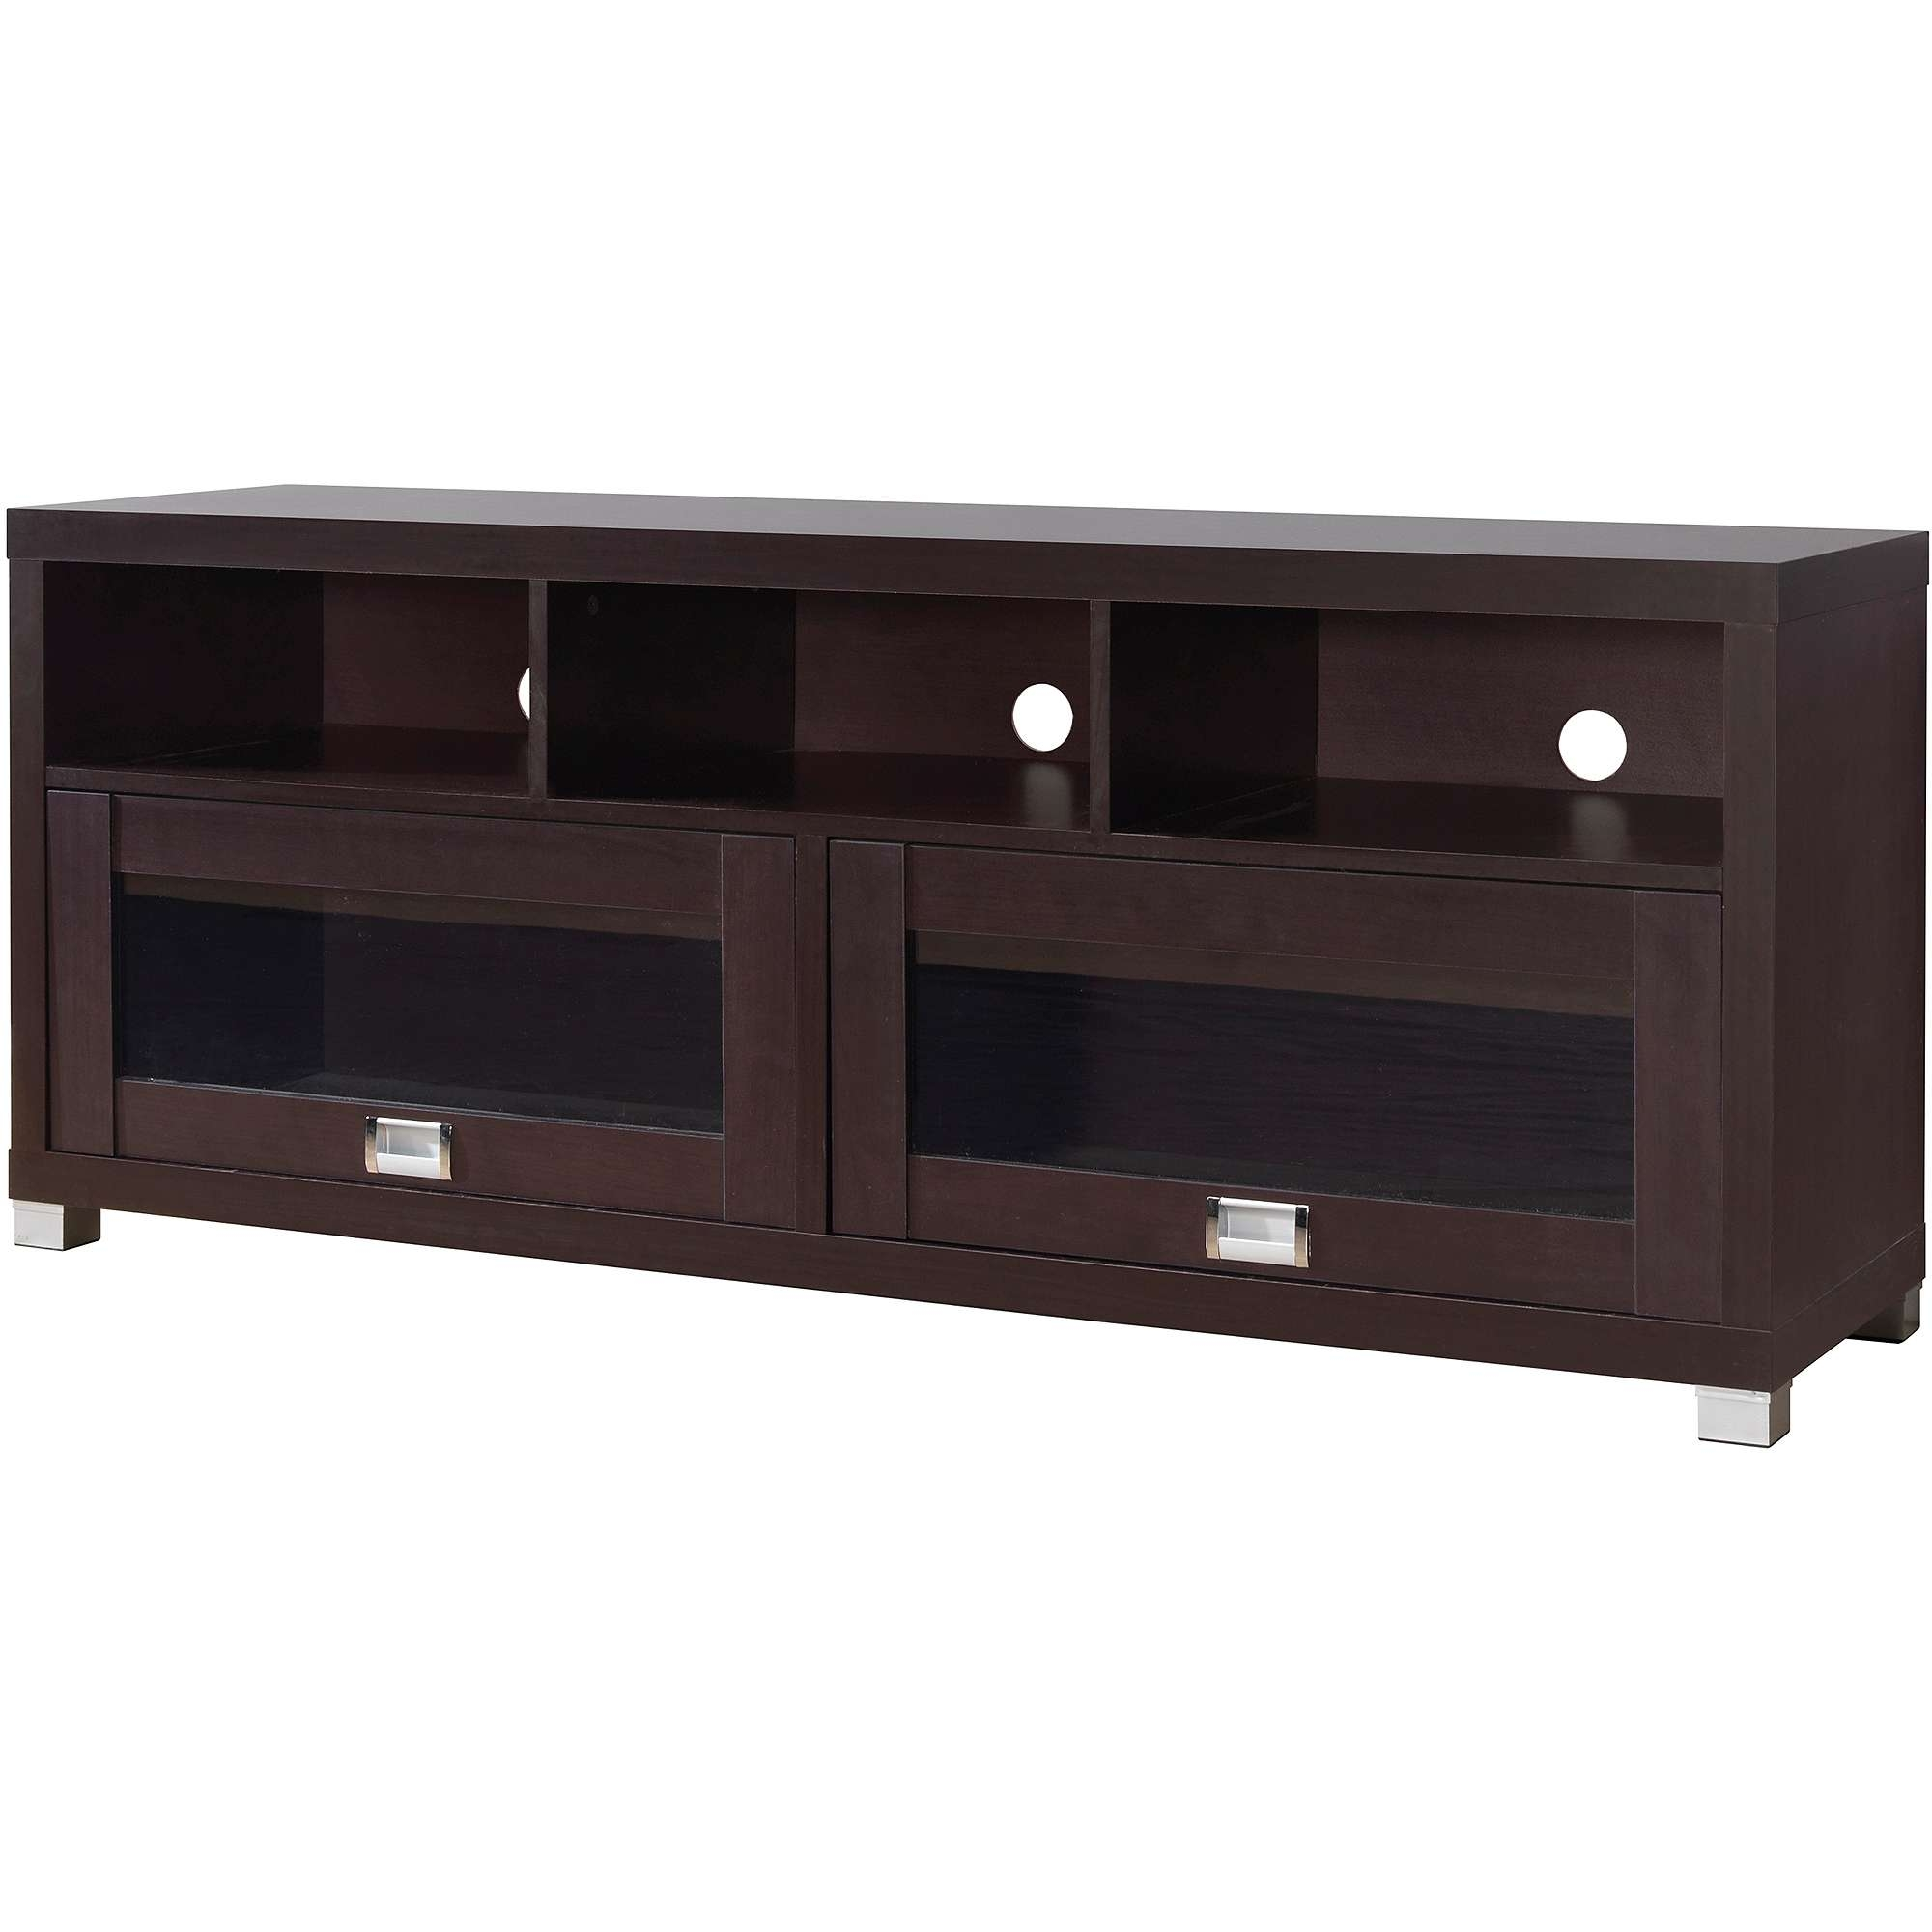 """Techni Mobili Durbin Tv Cabinet For Tvs Up To 65"""", Espresso For Expresso Tv Stands (View 2 of 15)"""